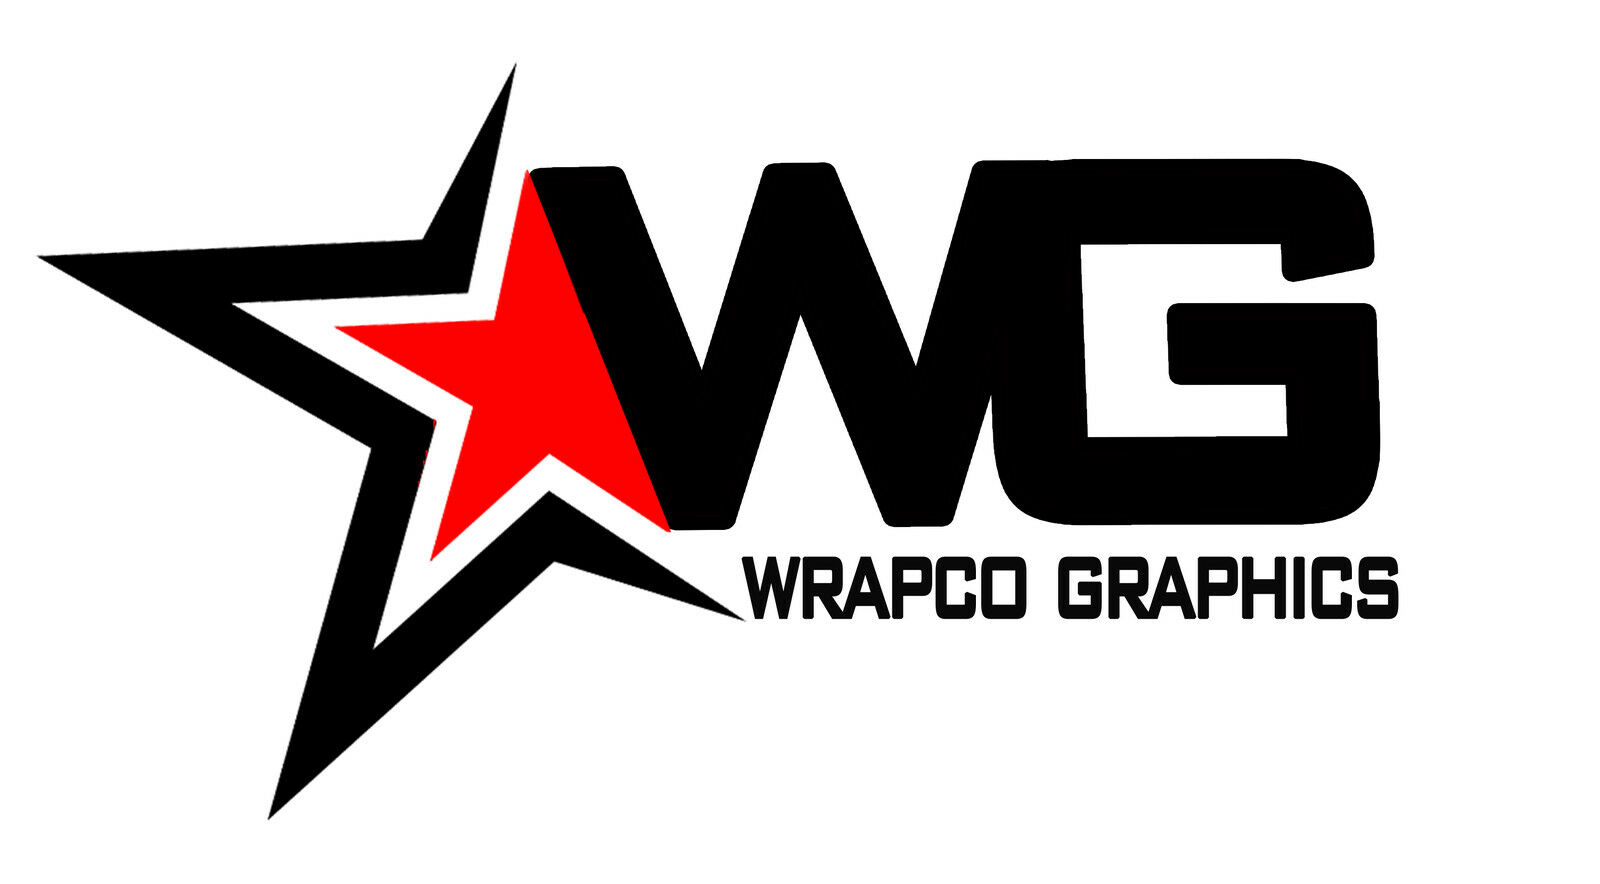 Wrapco Graphics